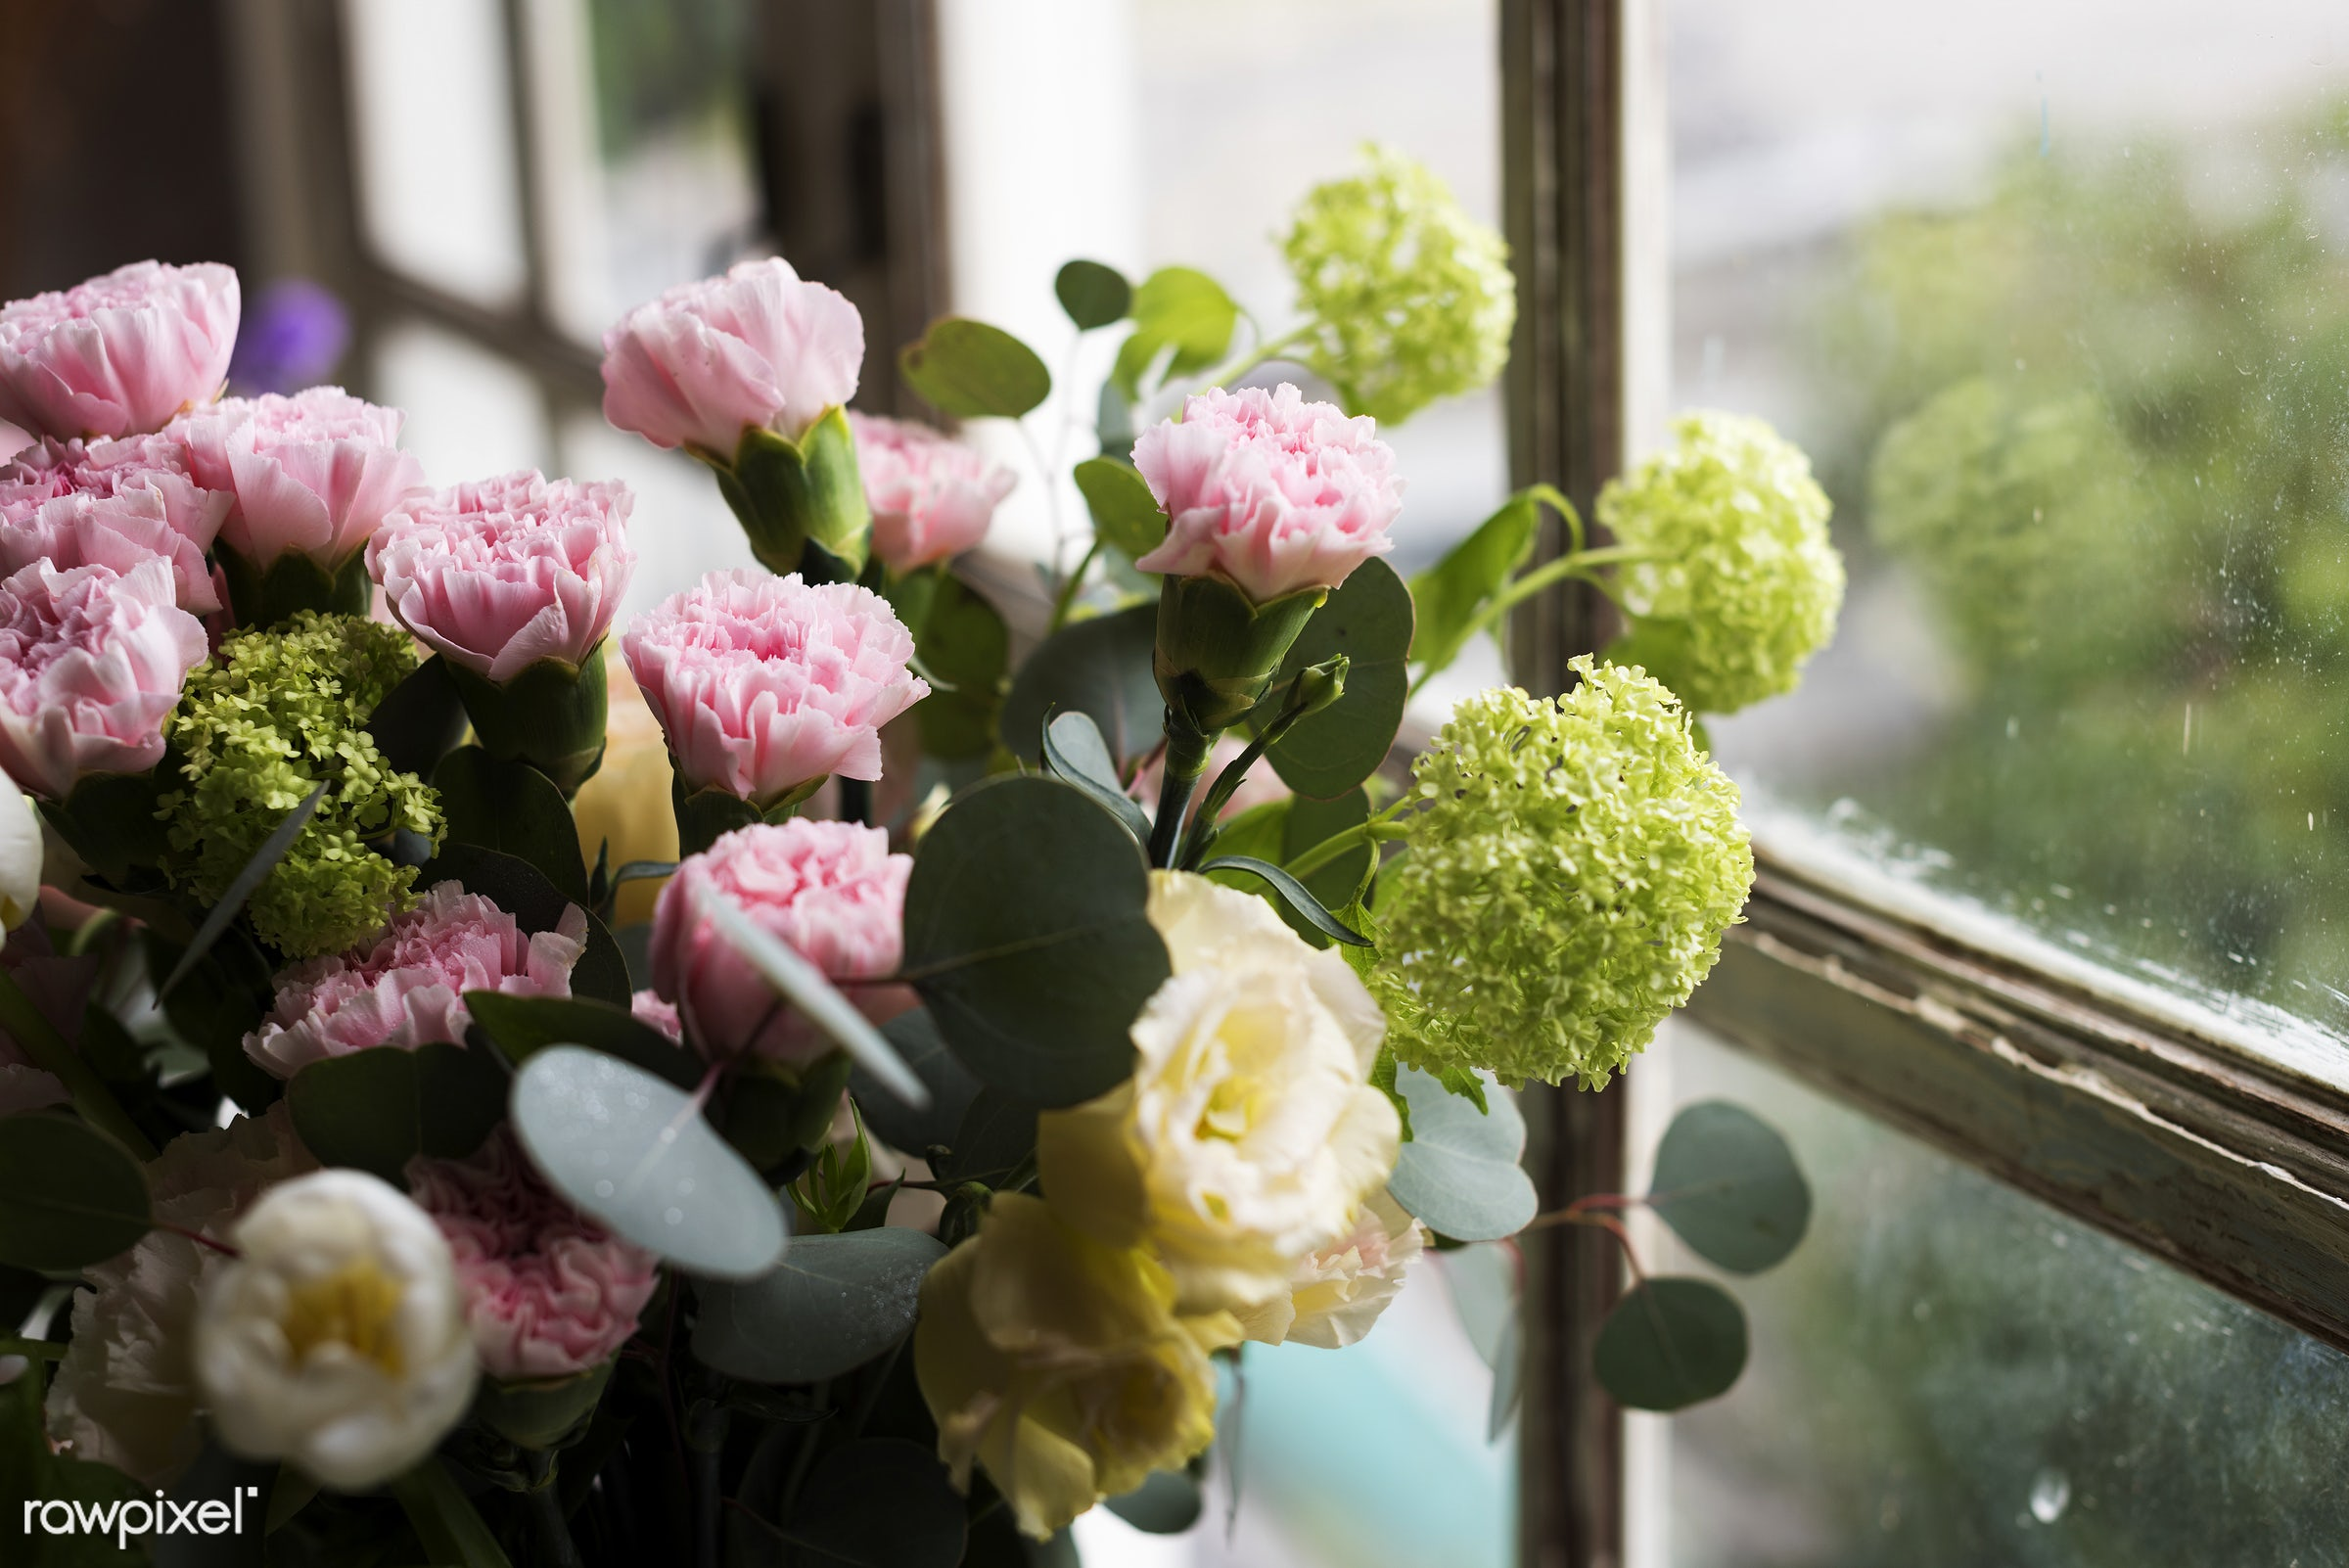 bouquet, craft, aromatic, decorative, beauty, spring, rustic, blossom, style, nature, vintage, decoration, flora, beautiful...